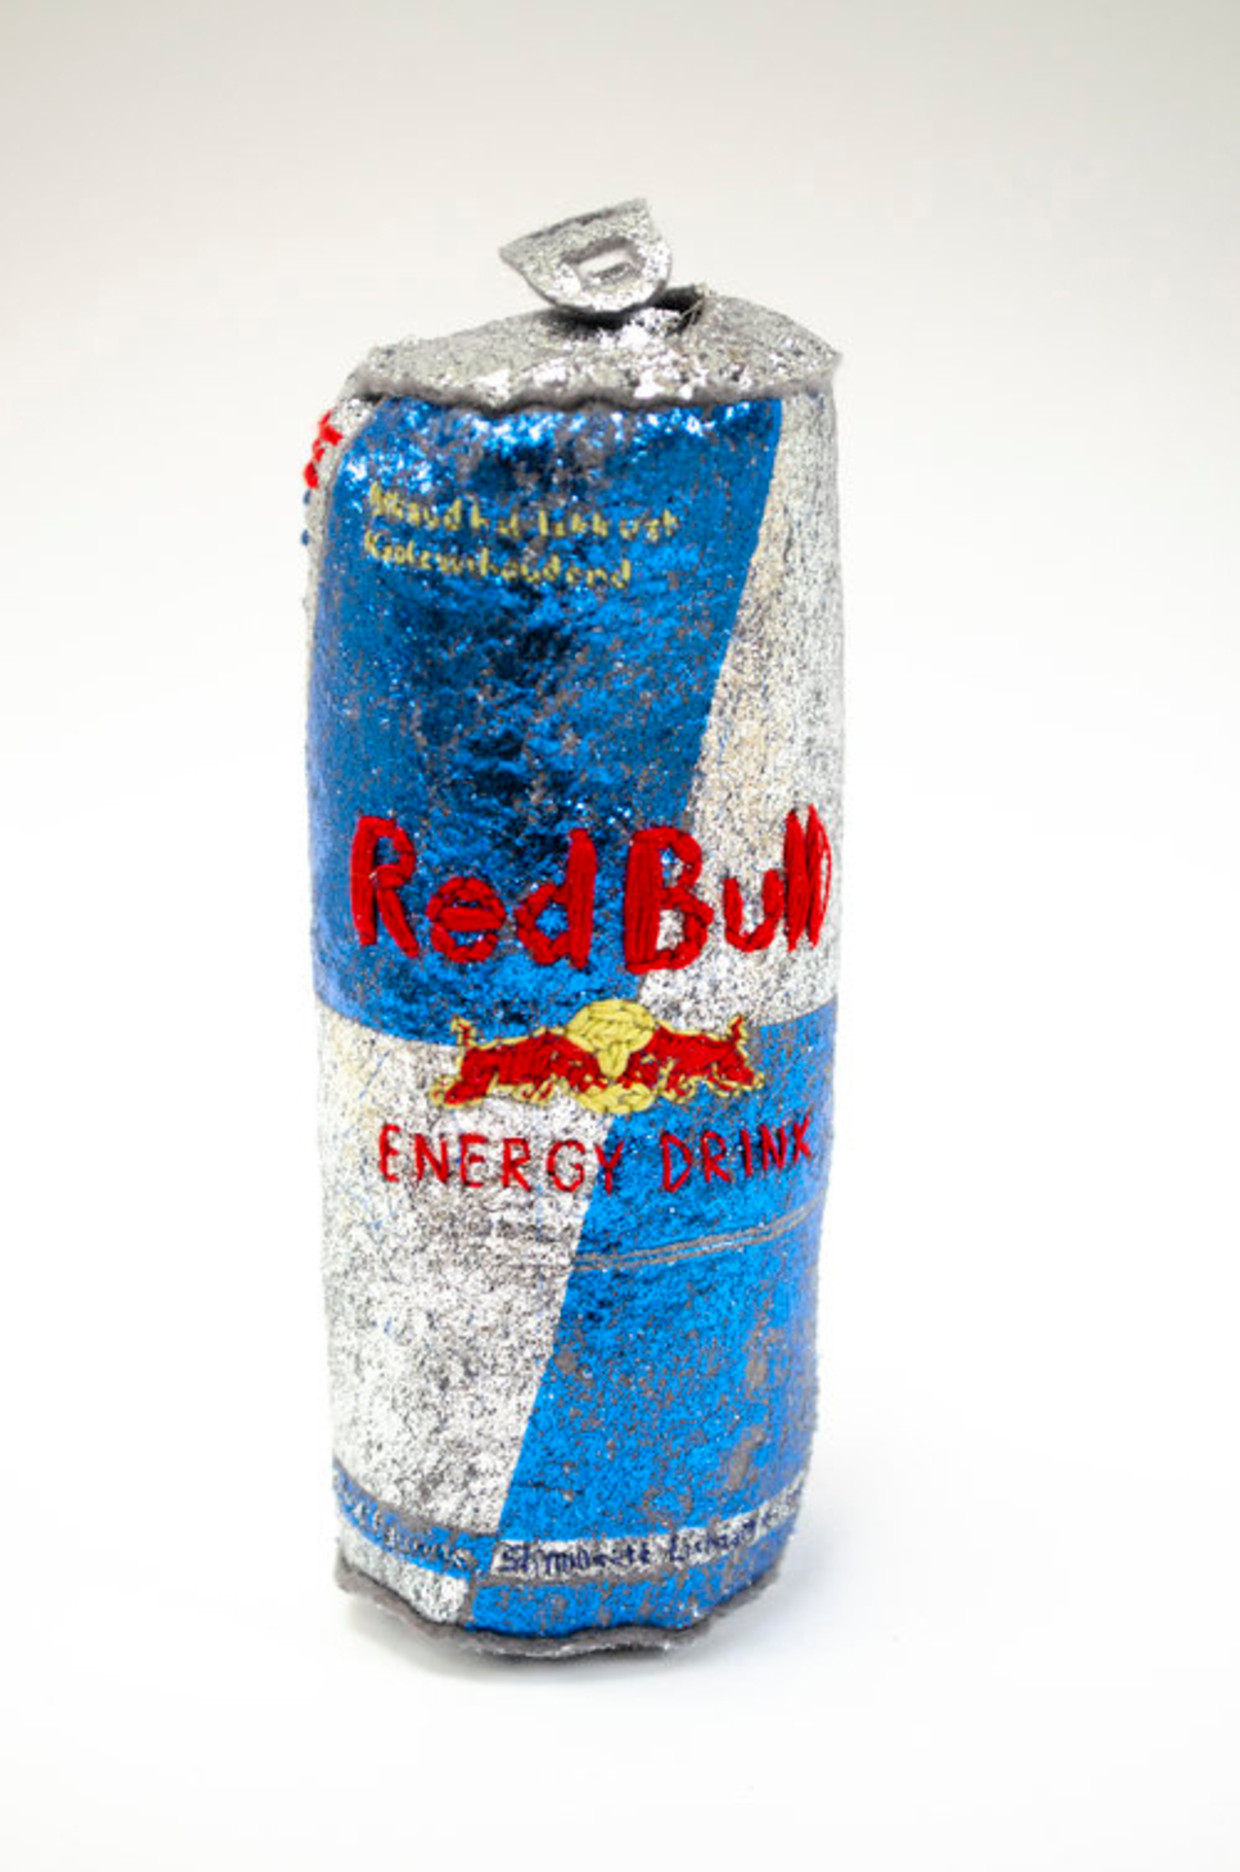 Pop art dagmar stap red bull